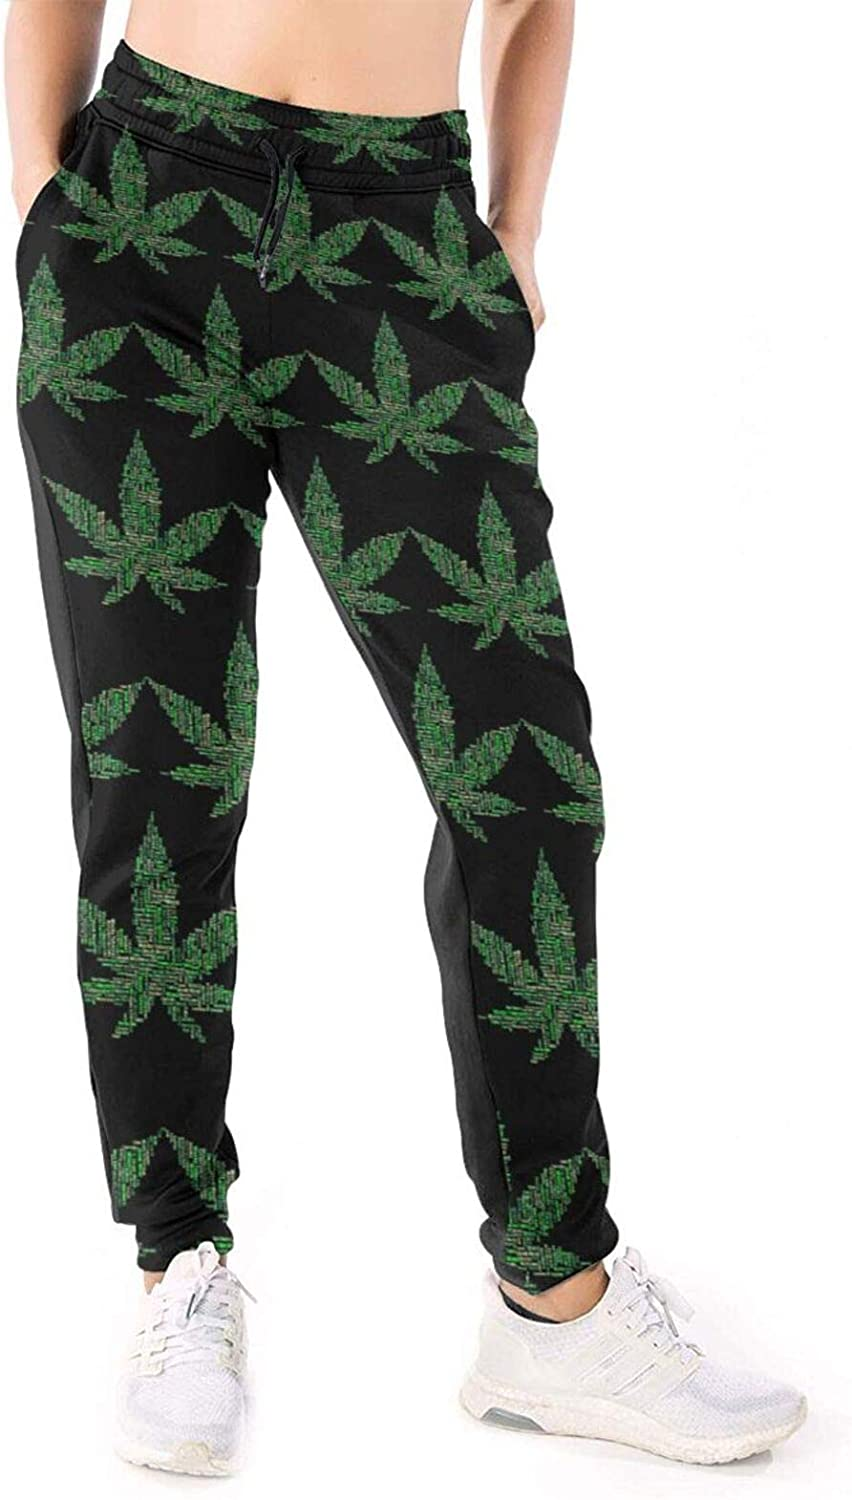 LONEA Women Joggers Pants Marijuana Drugs Cannabis Weed Athletic Sweatpants with Pockets Casual Trousers Baggy